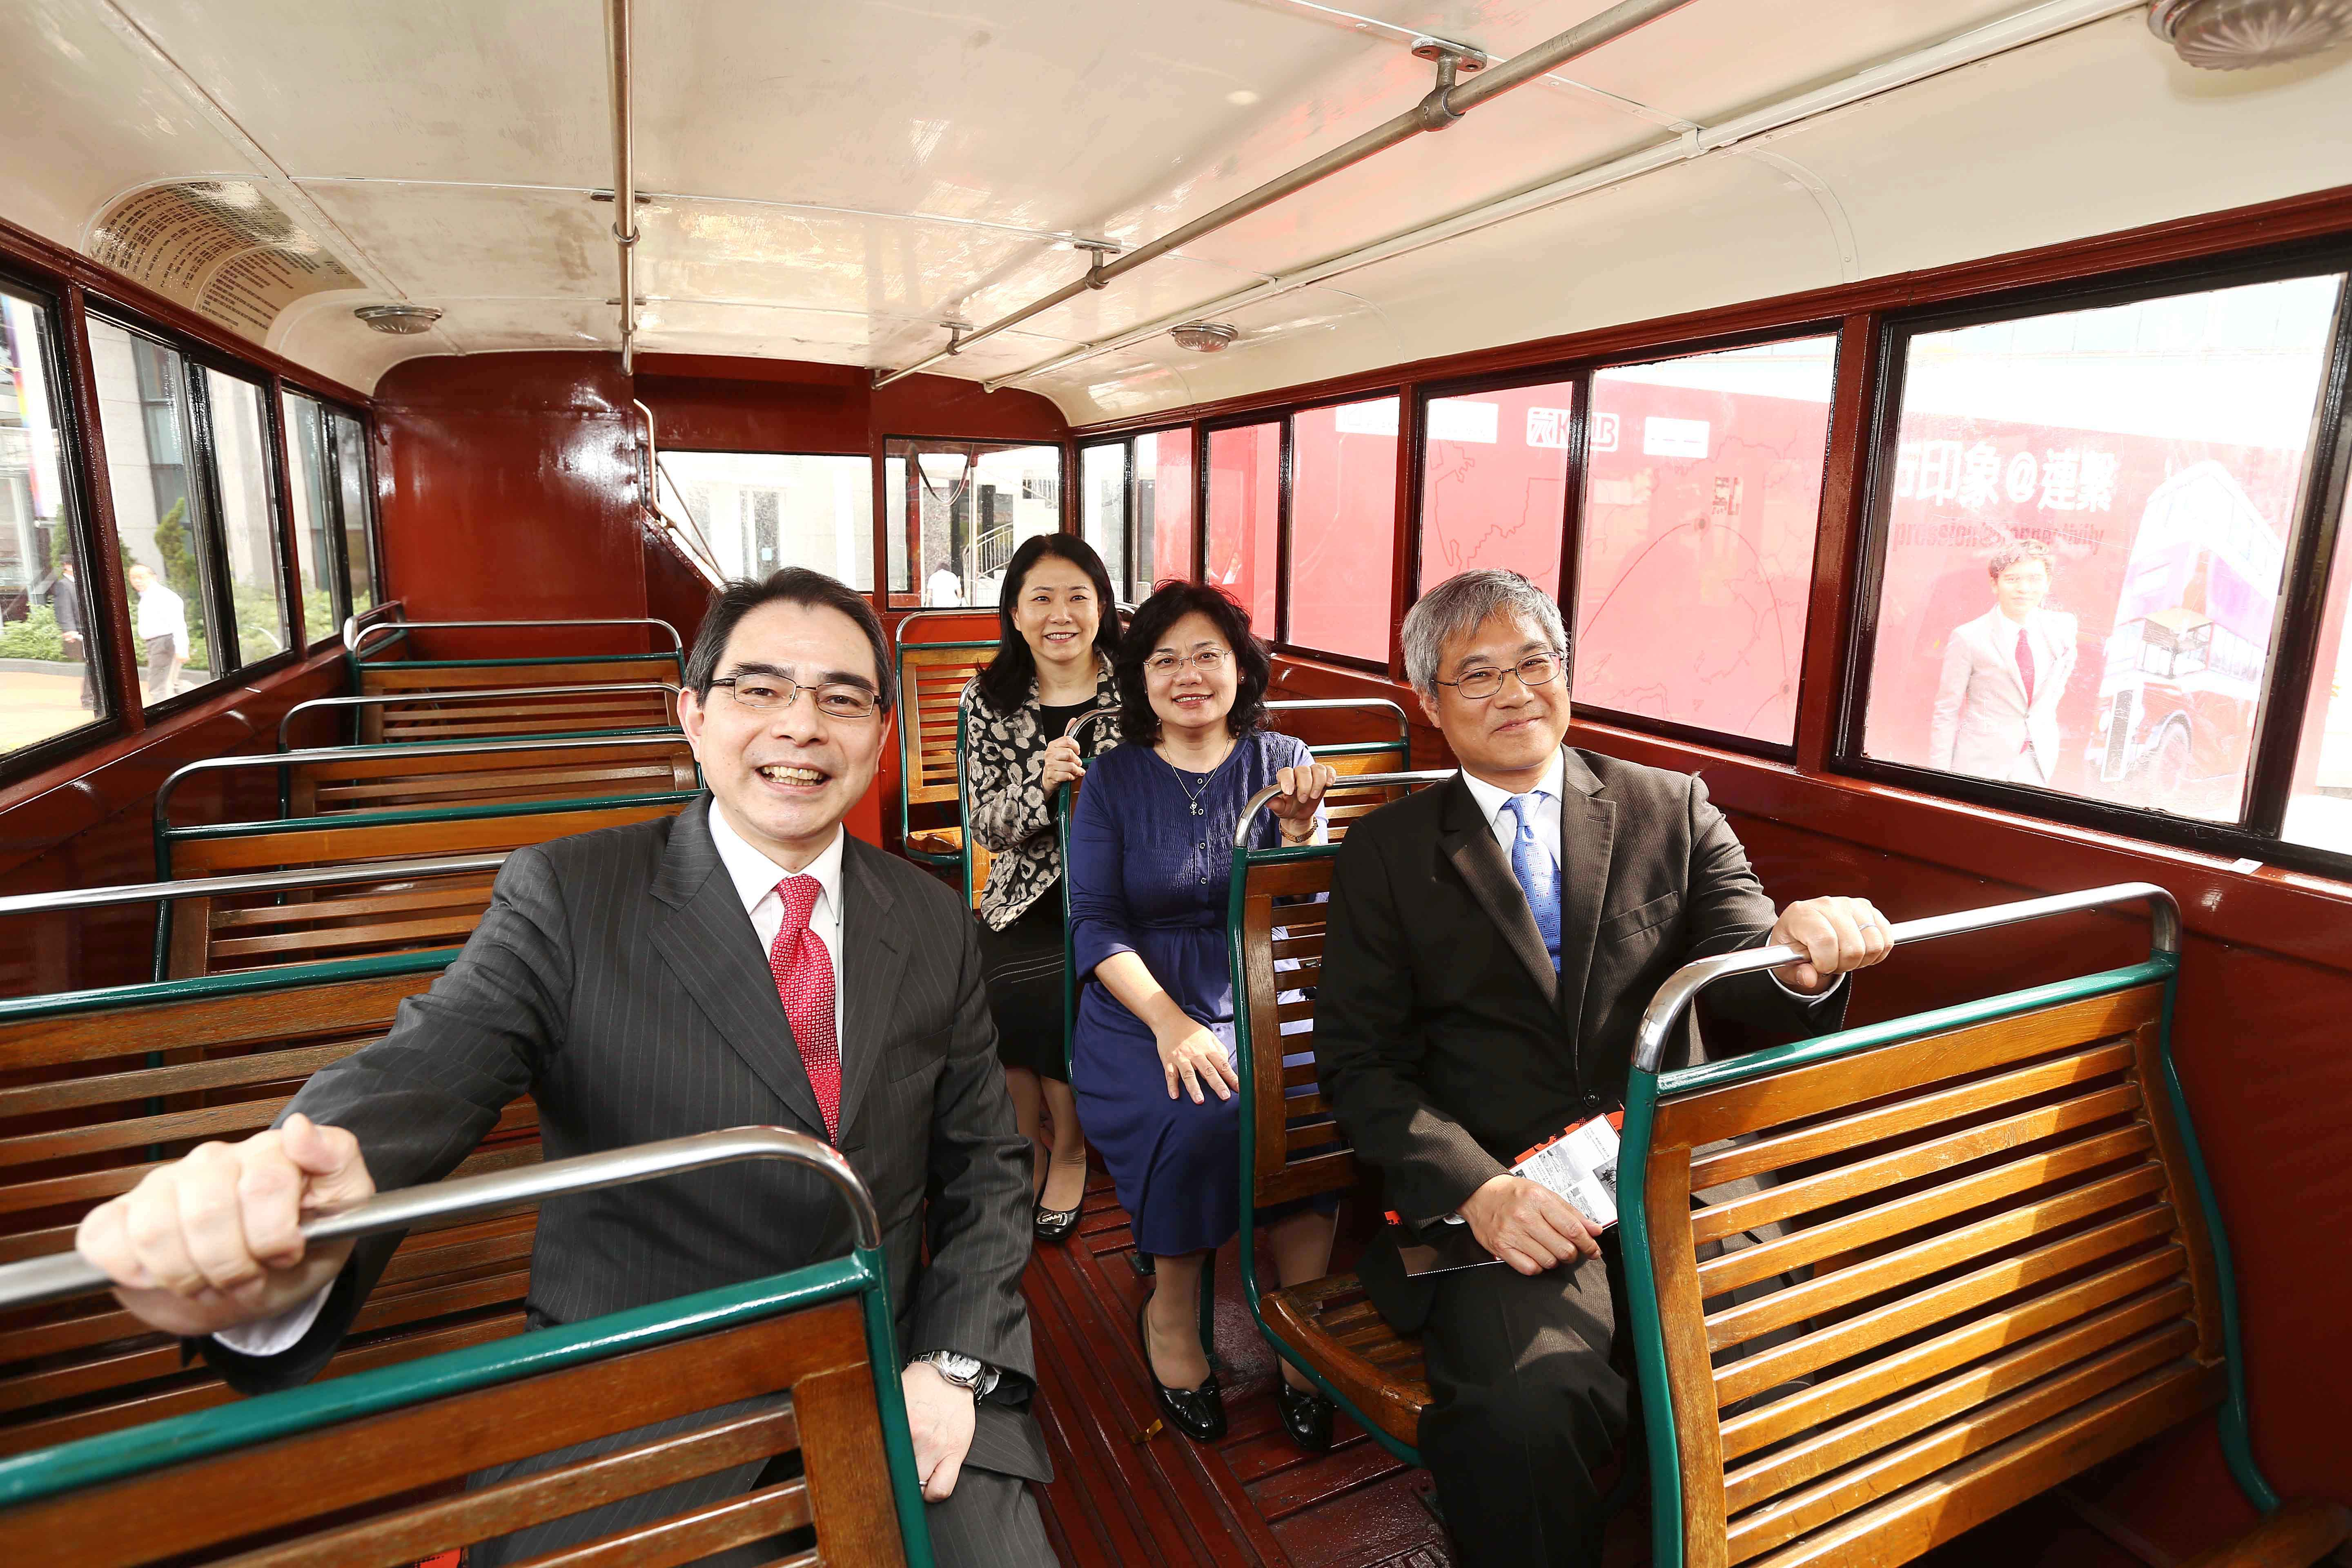 The four officiating guests on the upper deck of the vintage Daimler A bus.